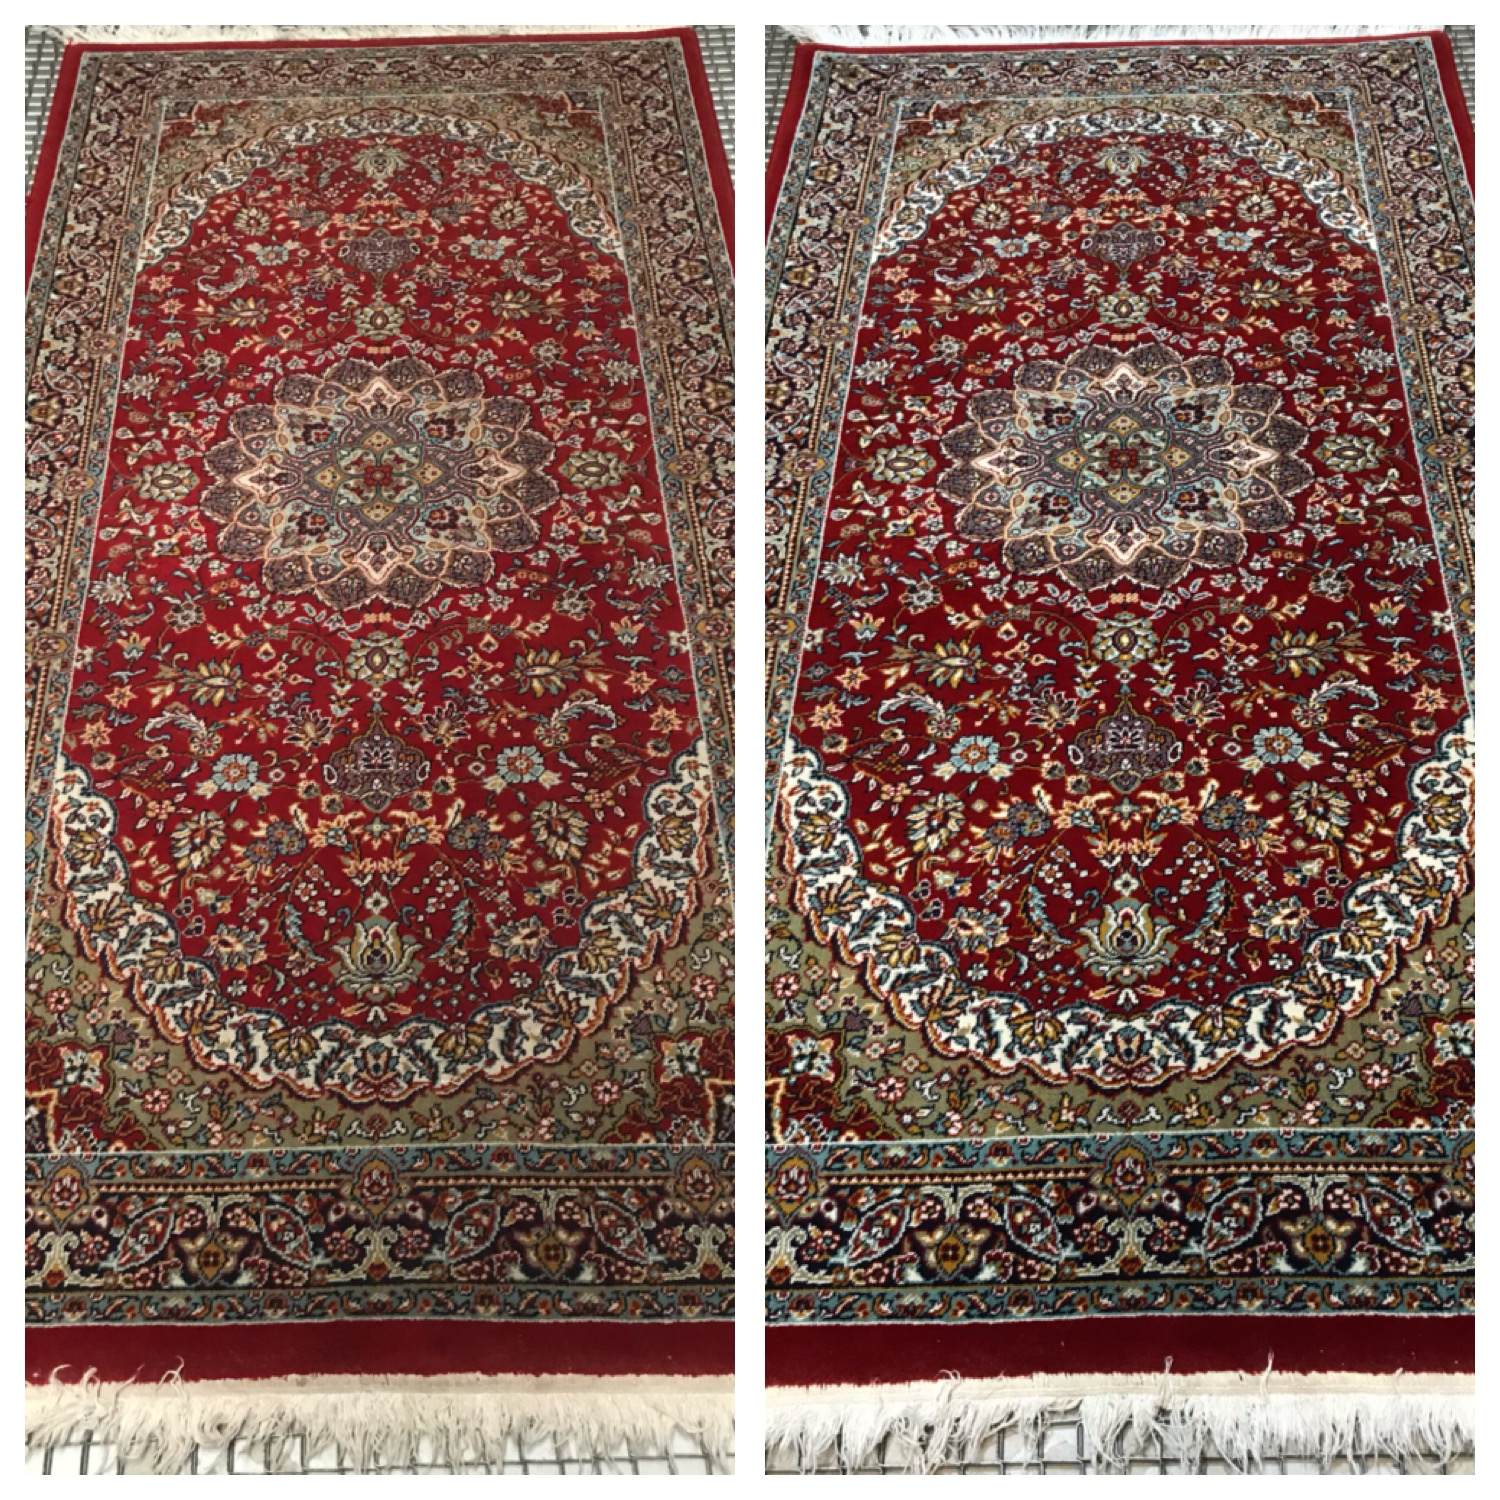 Rug Cleaning Cheshire - red rug